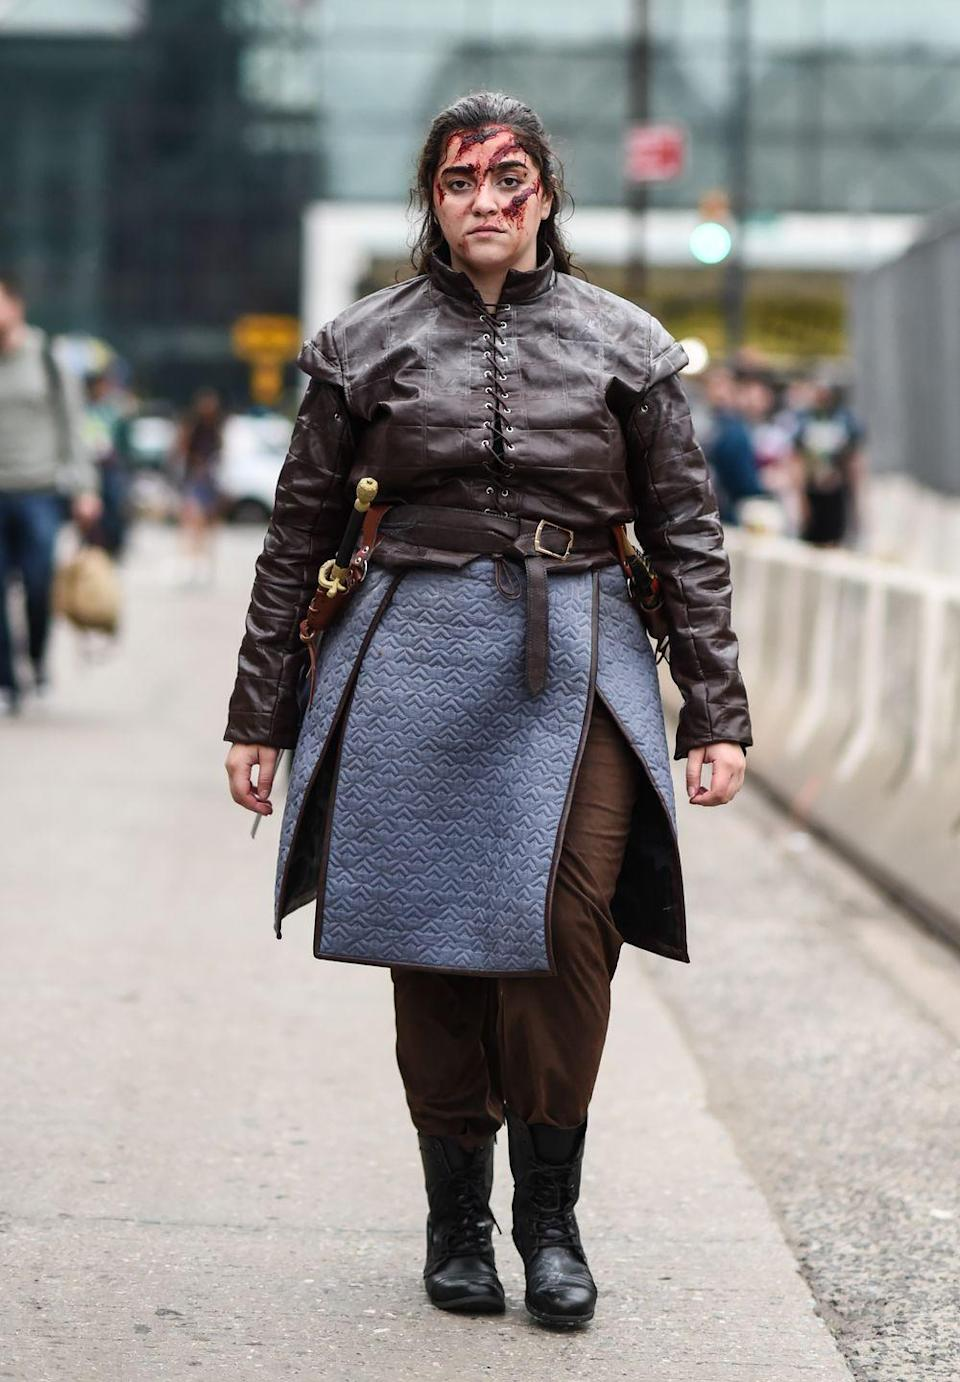 """<p>Arya ended up being the savior of the seven kingdoms, and therefore deserves to be commemorated in a well-made Halloween costume. And of course, you can't forget her trusty sword, Needle.</p><p><a class=""""link rapid-noclick-resp"""" href=""""https://www.amazon.com/Encore-Costumes-Cosplay-Adults-Medium/dp/B07X31FGG5?tag=syn-yahoo-20&ascsubtag=%5Bartid%7C10070.g.28762544%5Bsrc%7Cyahoo-us"""" rel=""""nofollow noopener"""" target=""""_blank"""" data-ylk=""""slk:SHOP CLOAK"""">SHOP CLOAK</a></p><p><a class=""""link rapid-noclick-resp"""" href=""""https://www.amazon.com/Handmade-Katana-Cosplay-Stainless-Needle/dp/B08LVHHN26/?tag=syn-yahoo-20&ascsubtag=%5Bartid%7C10070.g.28762544%5Bsrc%7Cyahoo-us"""" rel=""""nofollow noopener"""" target=""""_blank"""" data-ylk=""""slk:SHOP NEEDLE"""">SHOP NEEDLE</a></p>"""